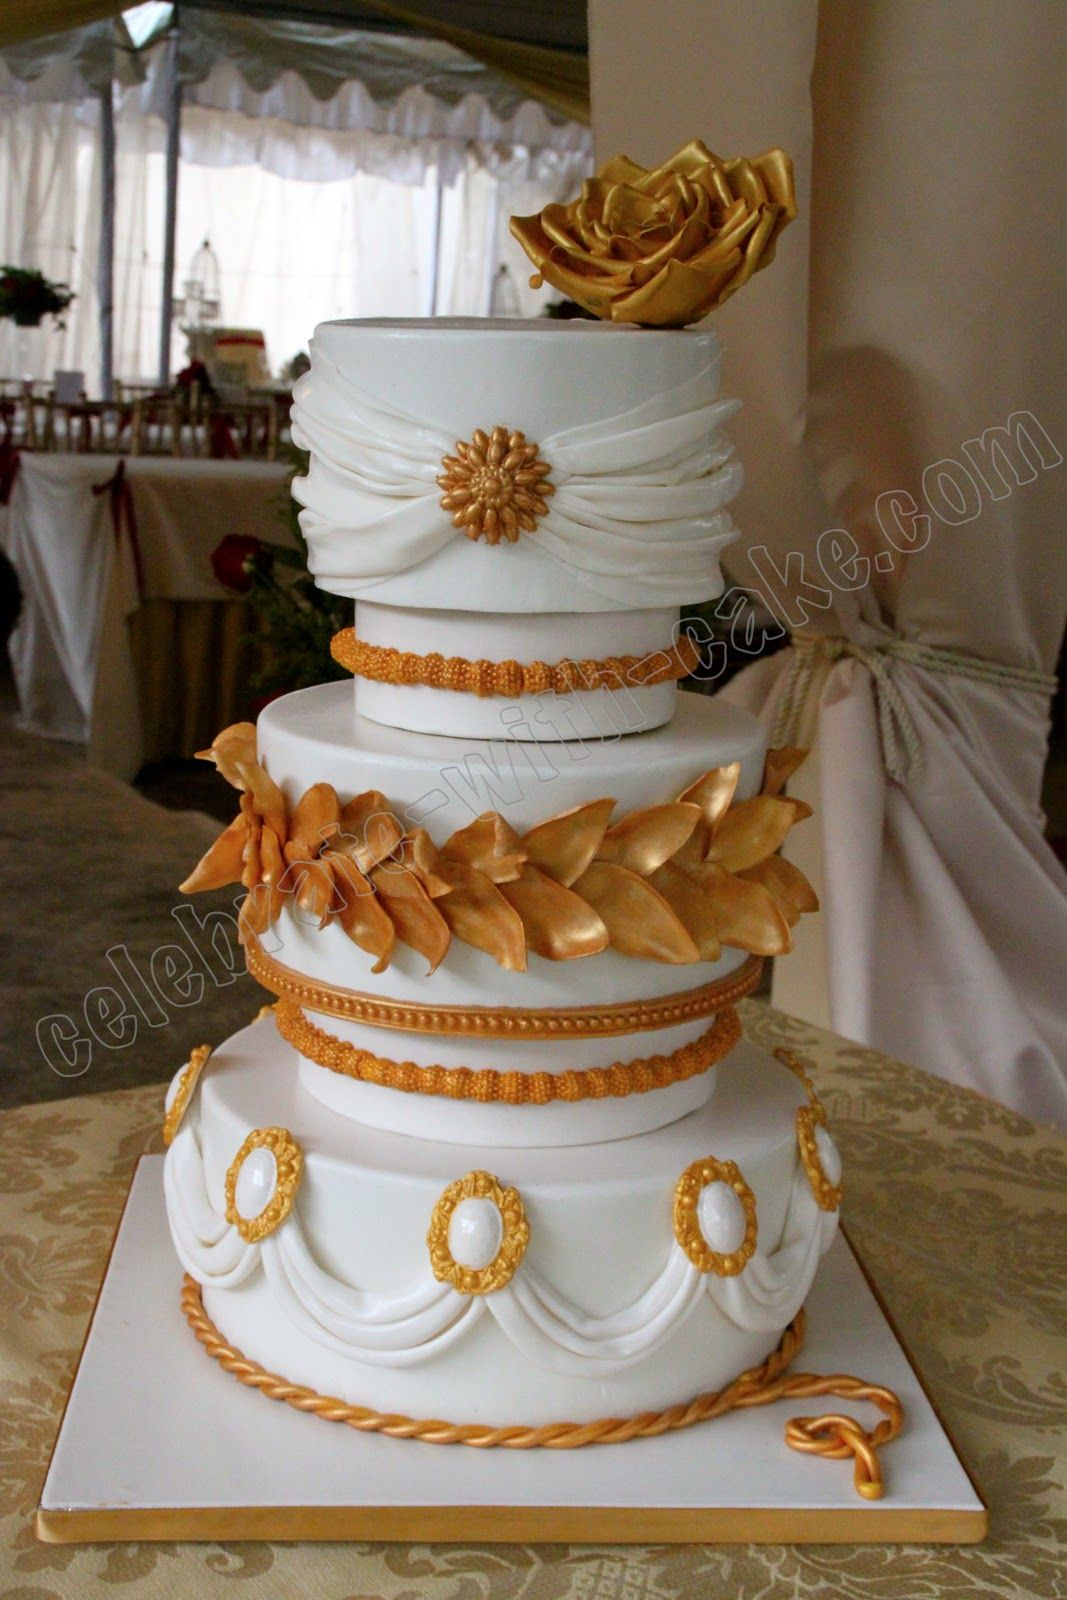 Grecian Themed Wedding Cake By Celebrate With Cake In Singapore